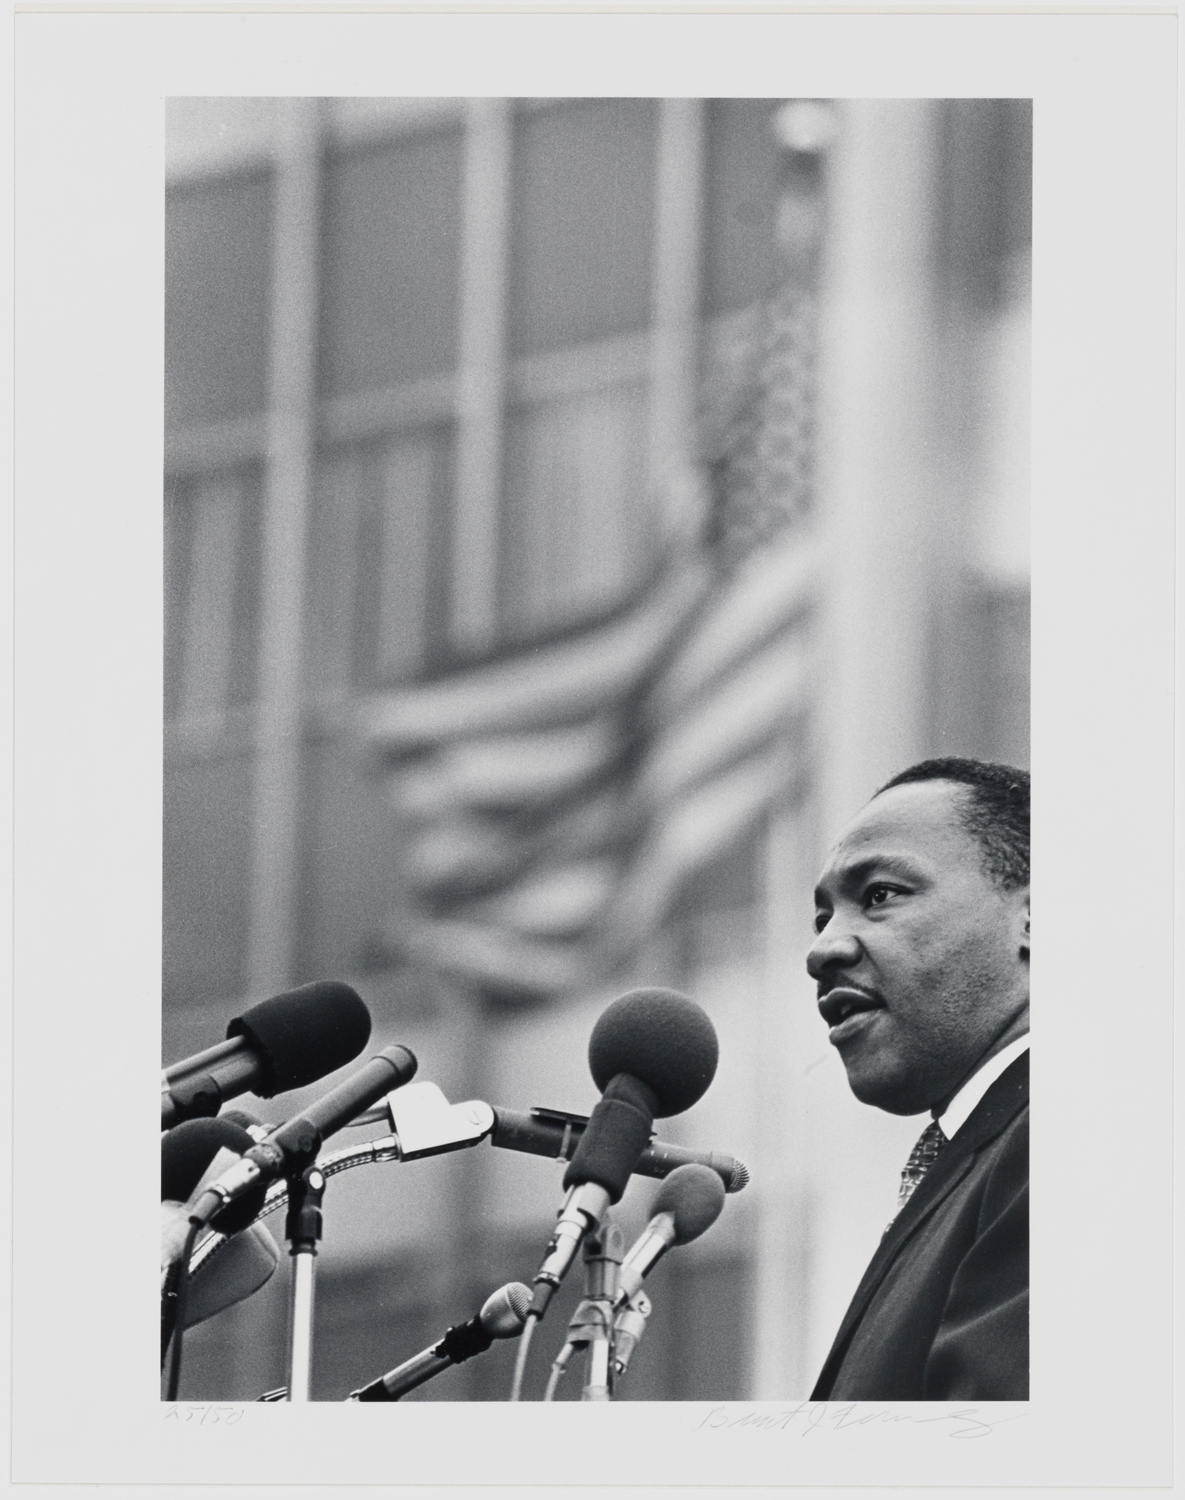 Black and white photograph of Martin Luthur King Jr. standing at a microphone with a building and flag waving behind him.